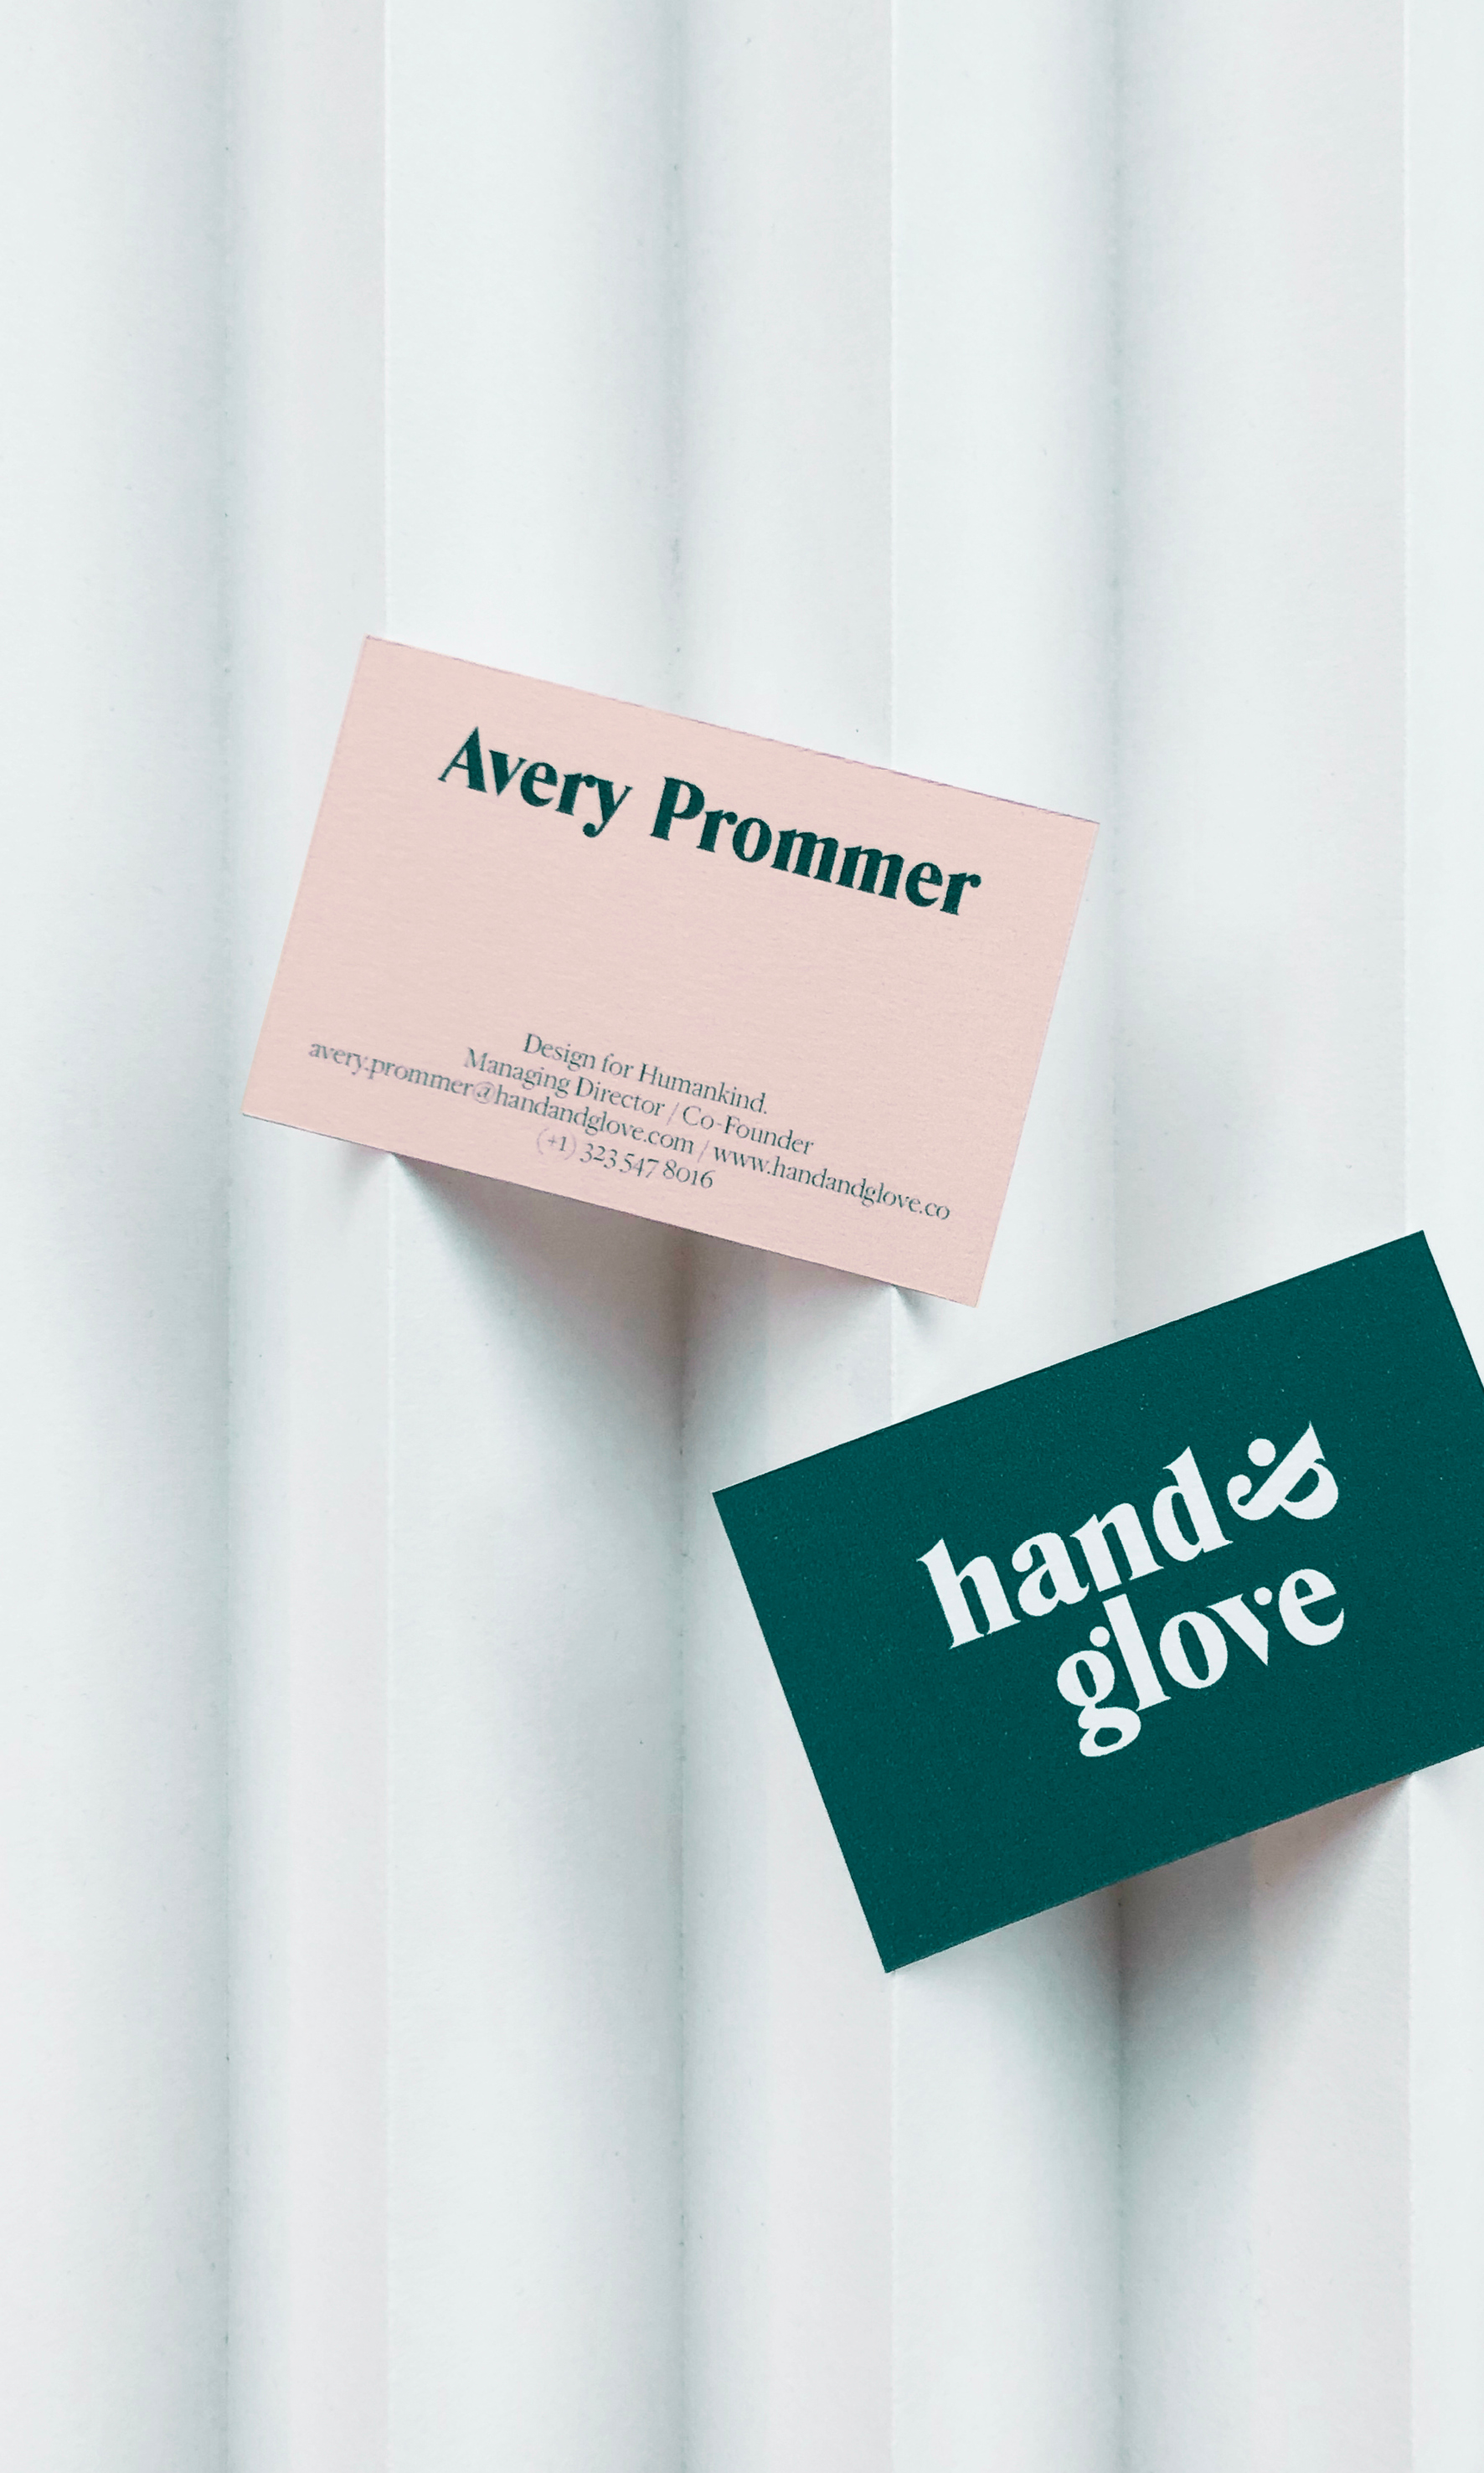 Hands&Glove business cards